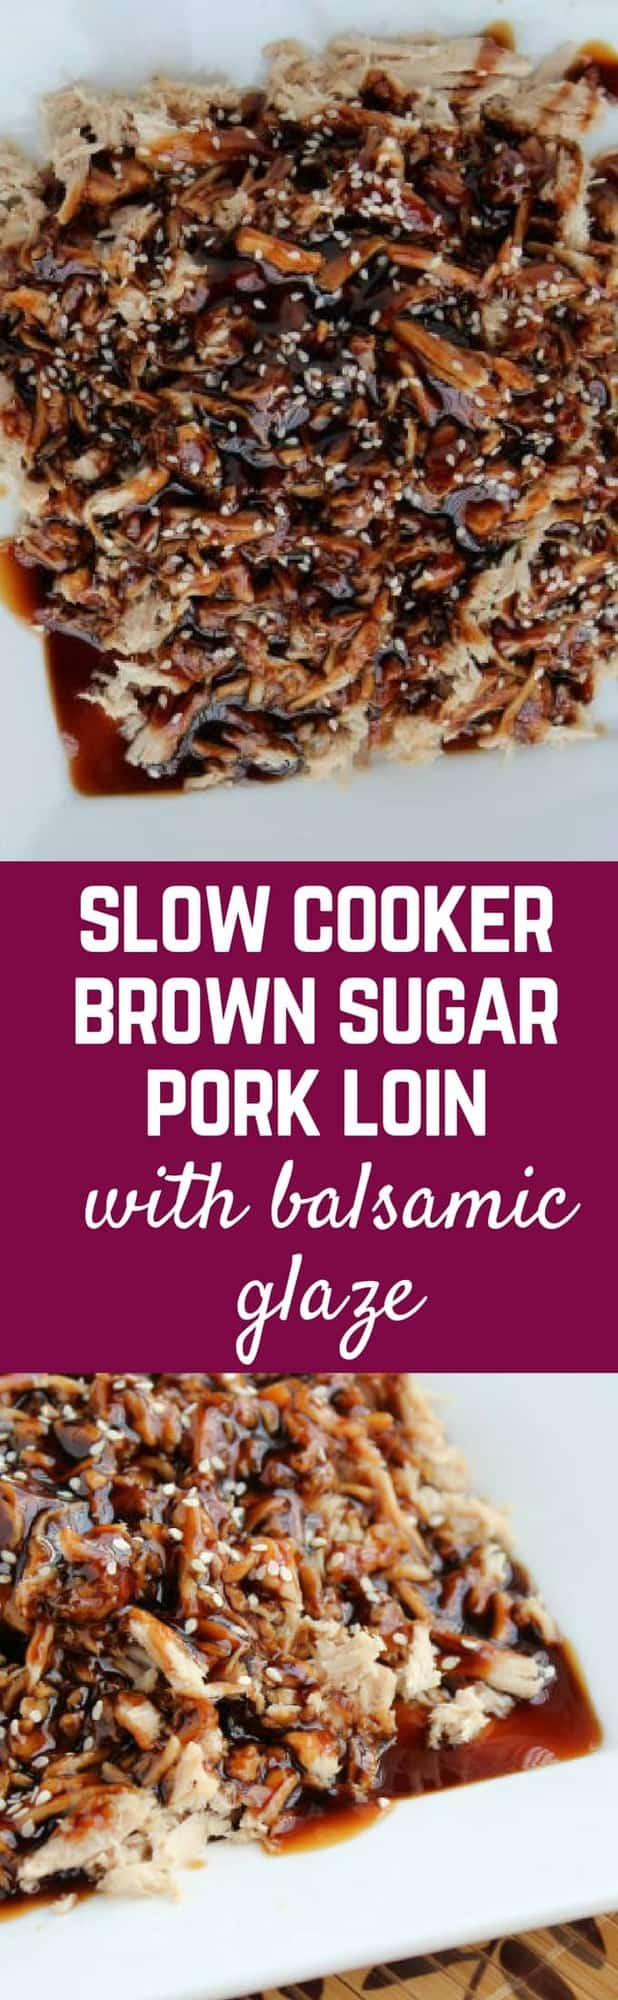 This brown sugar pork loin is made in the slow cooker for an easy weeknight meal. You'll love the glaze! Get the recipe on RachelCooks.com!